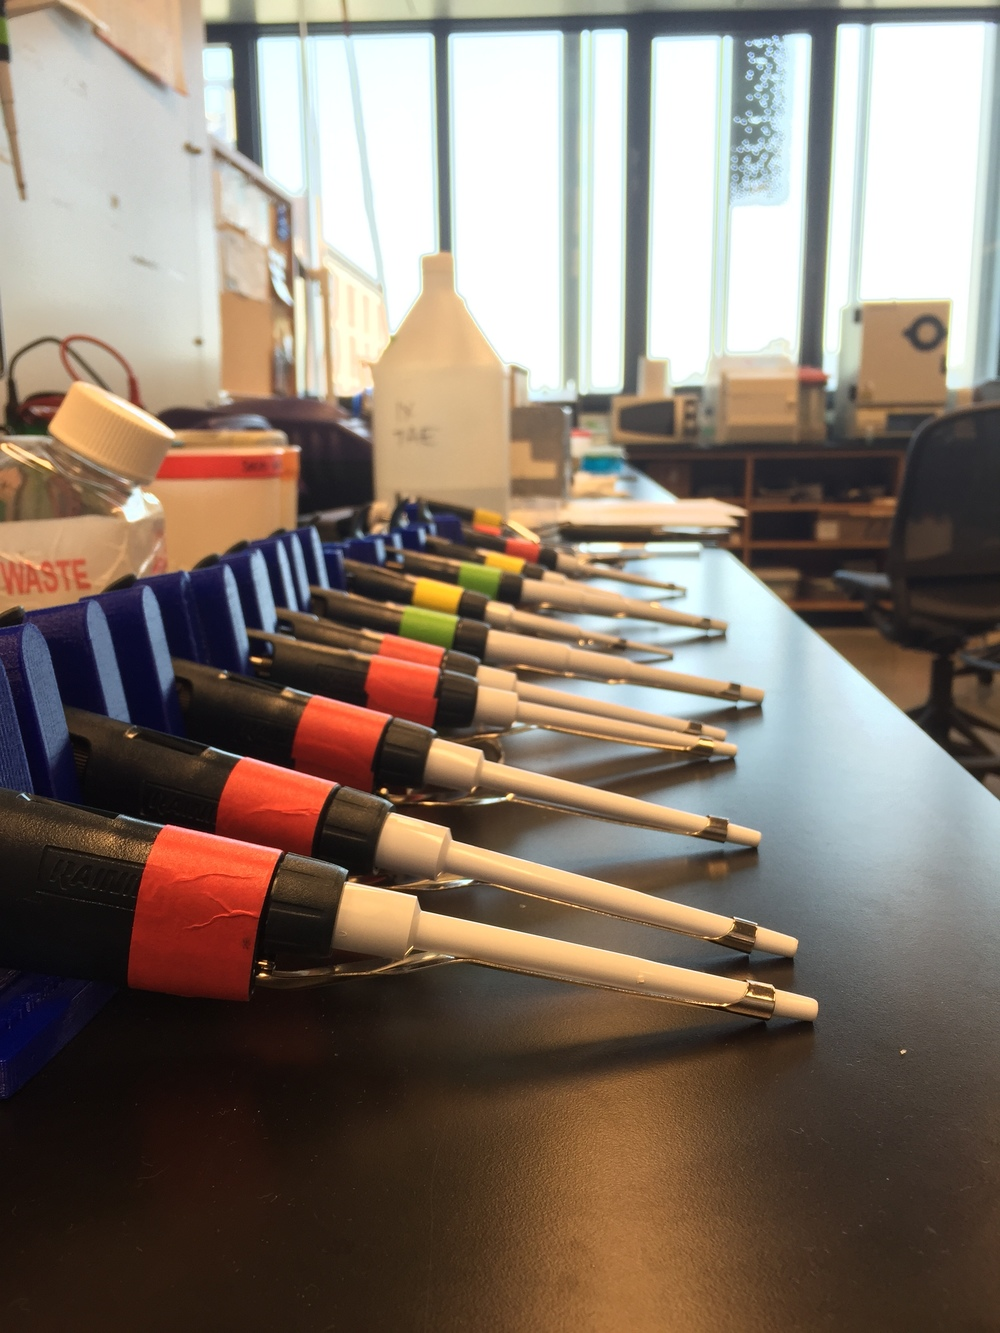 Pipets in a line